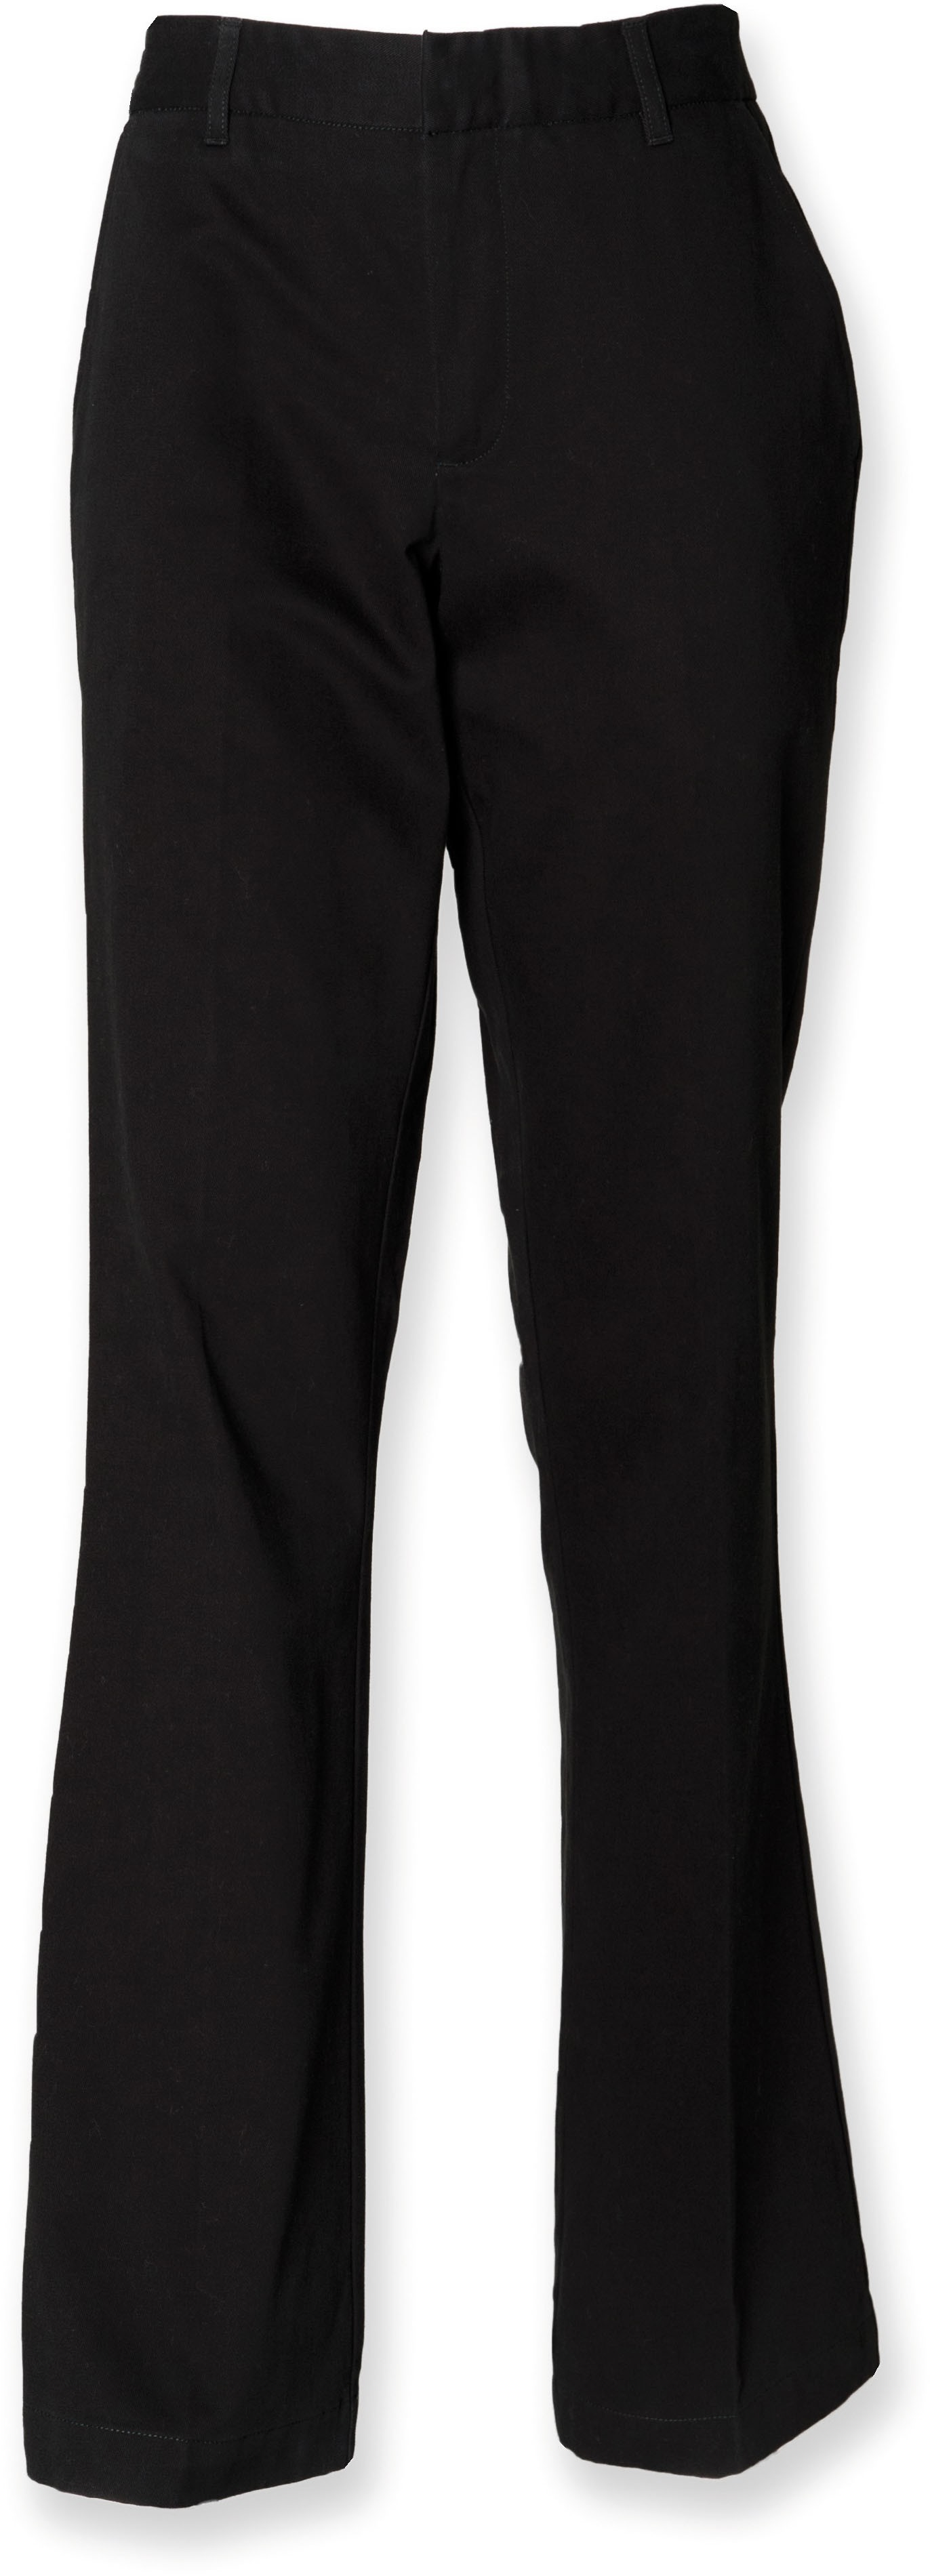 Ladies 65/35 Flat Fronted Chino Trousers